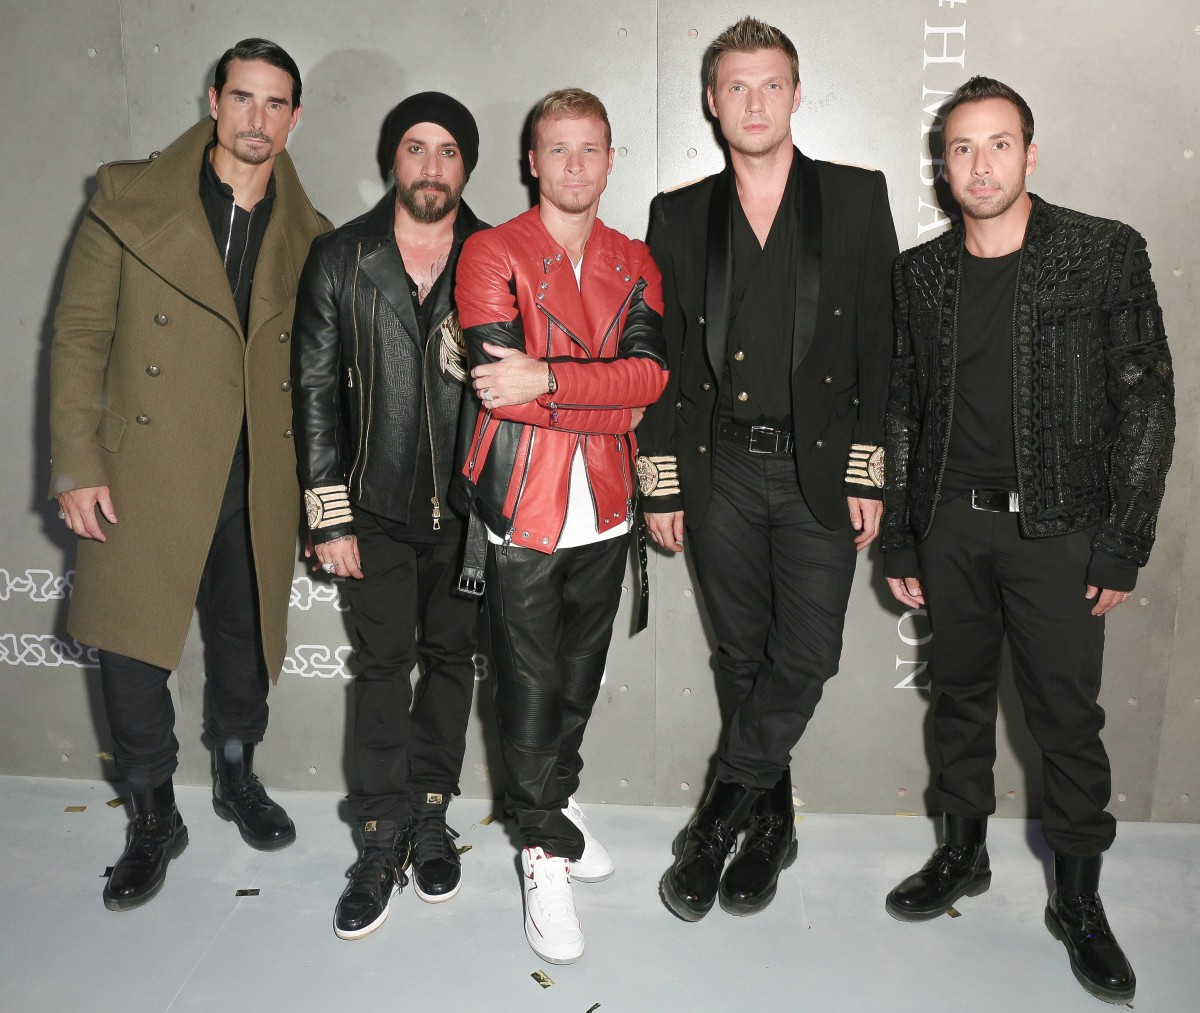 Backstreet Boys, Kevin Richardson, AJ McLean, Brian Littrell, Nick Carter, Howie Dorough